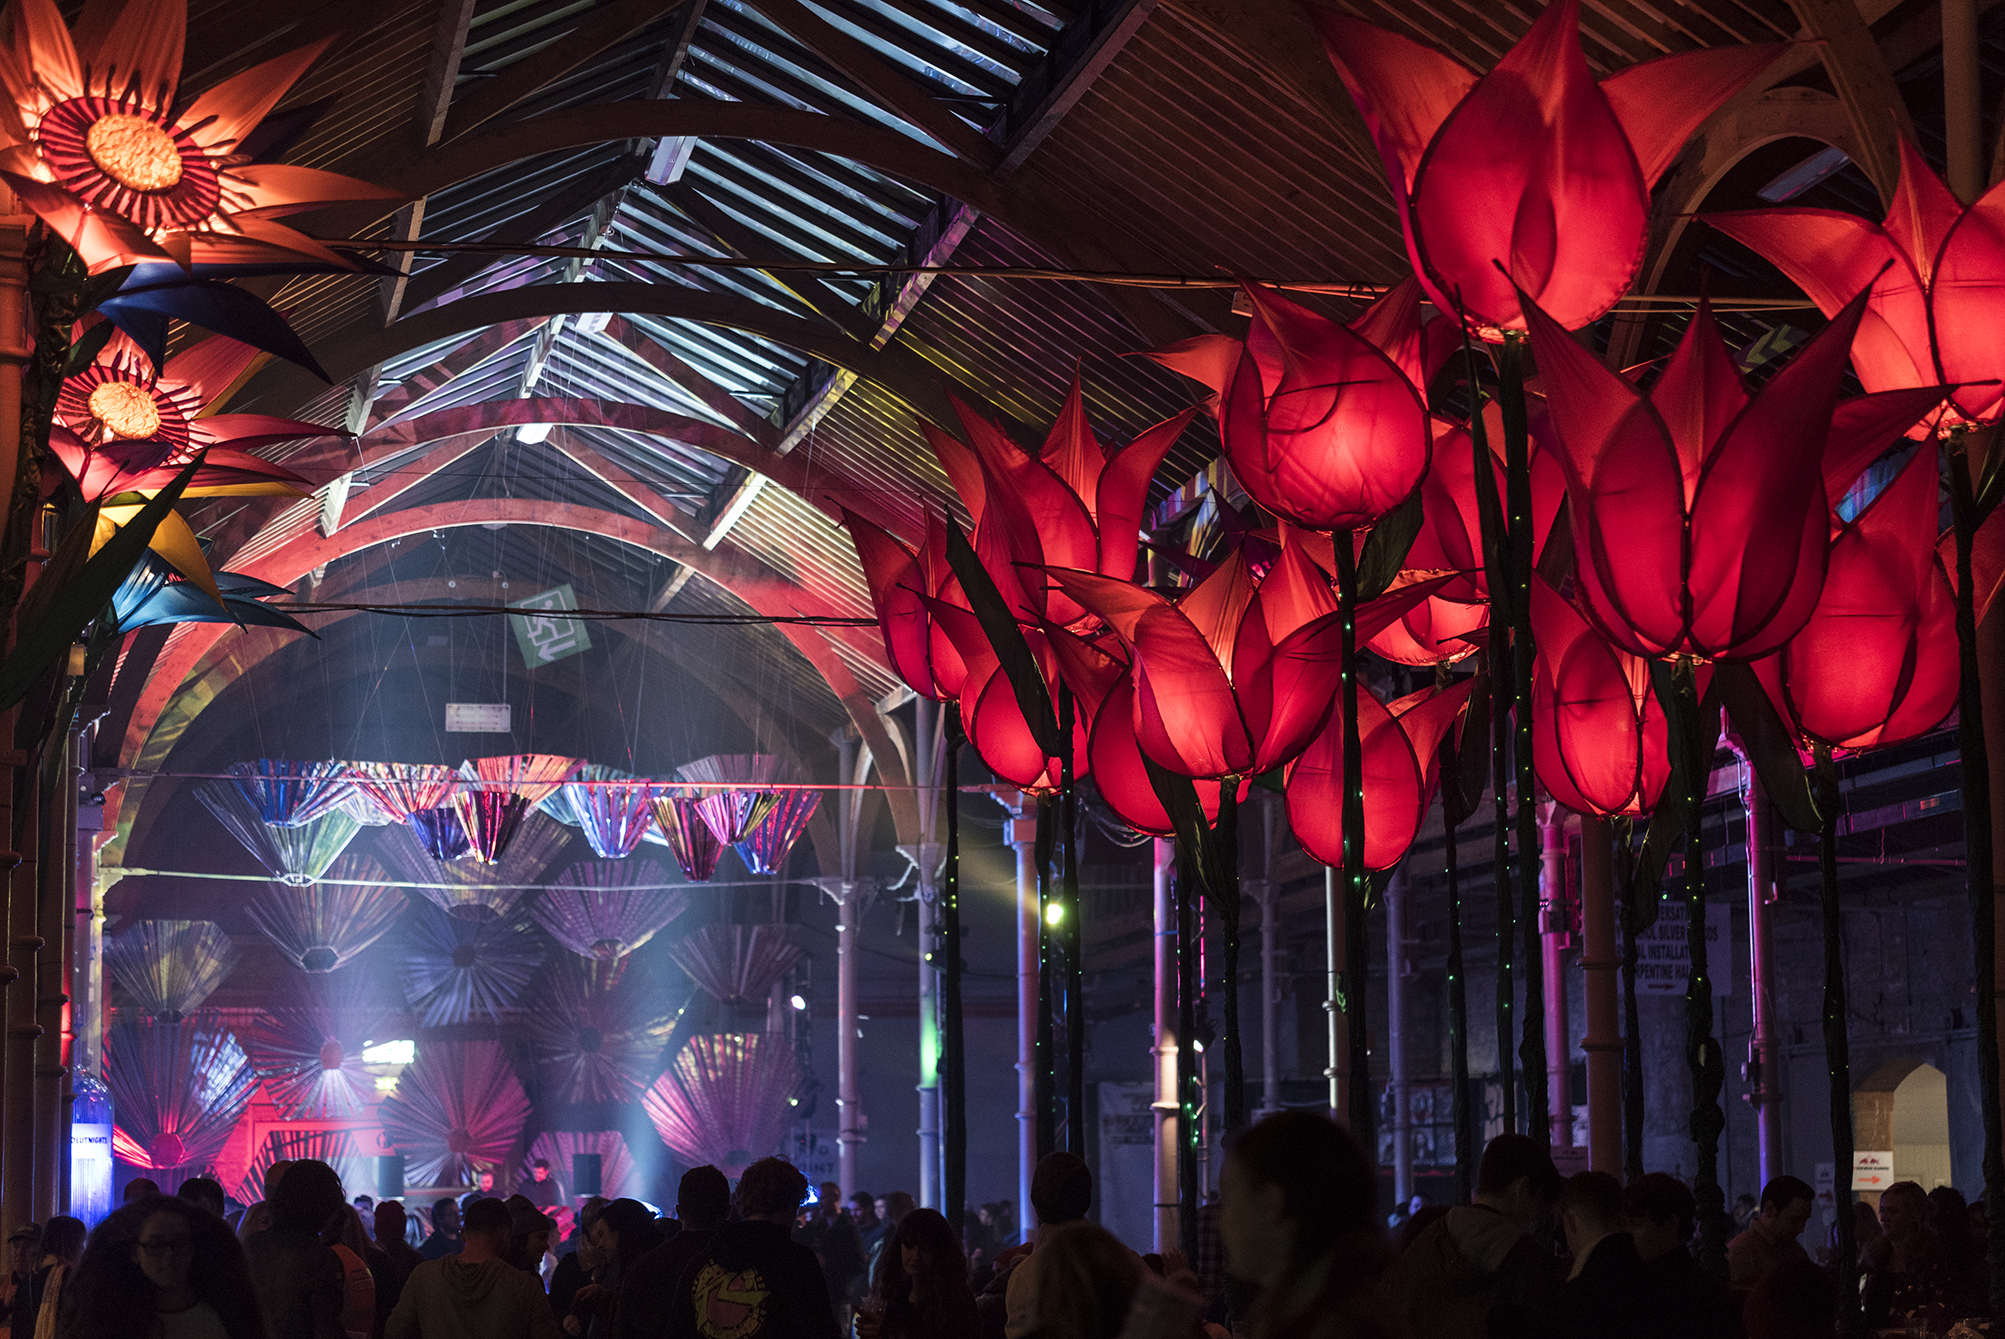 WE ARE EVENTS - Planning a one off event or function? We've worked on tonnes of tailor made events, from album launches, venue launches, fashion shows to awards shows. We love a good party. The weirder the better. Fancy a party? Let's talk.